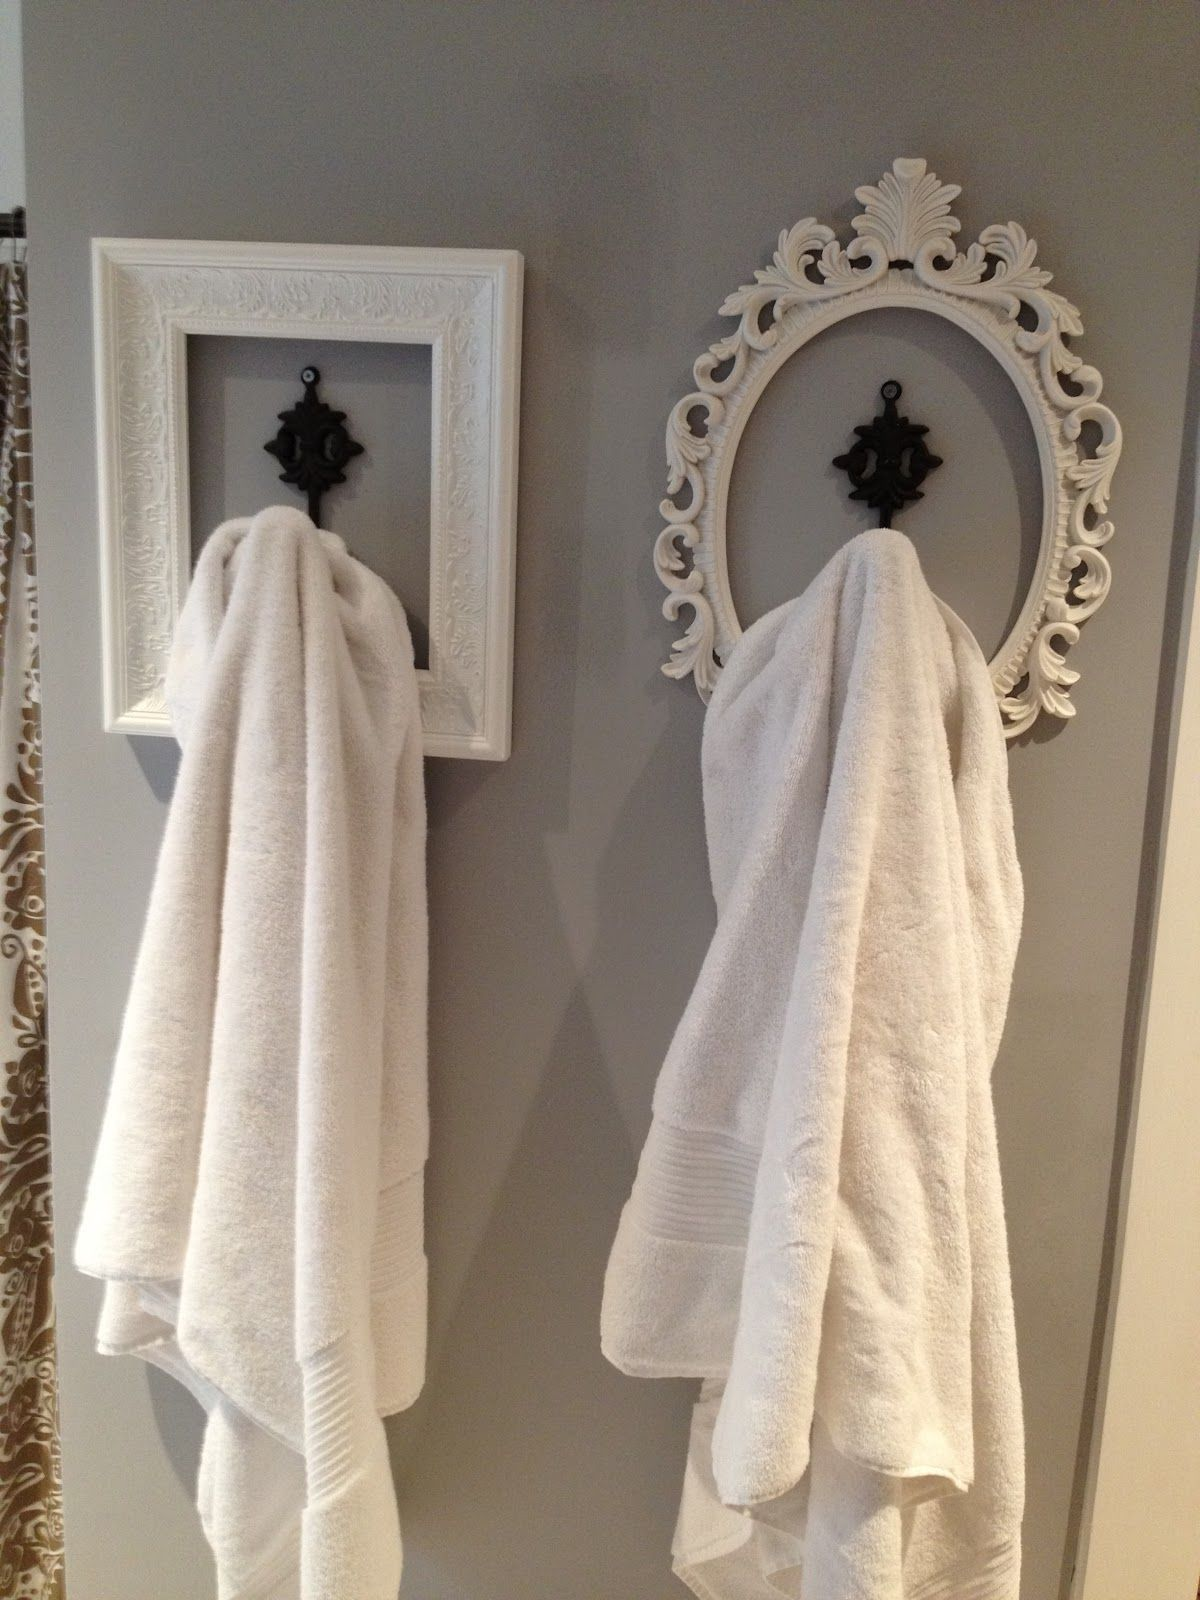 Hang Your Robe,towels Etc Fun. Used Old Frames/spray Paint. Cute Idea For  Kids Bathroom!